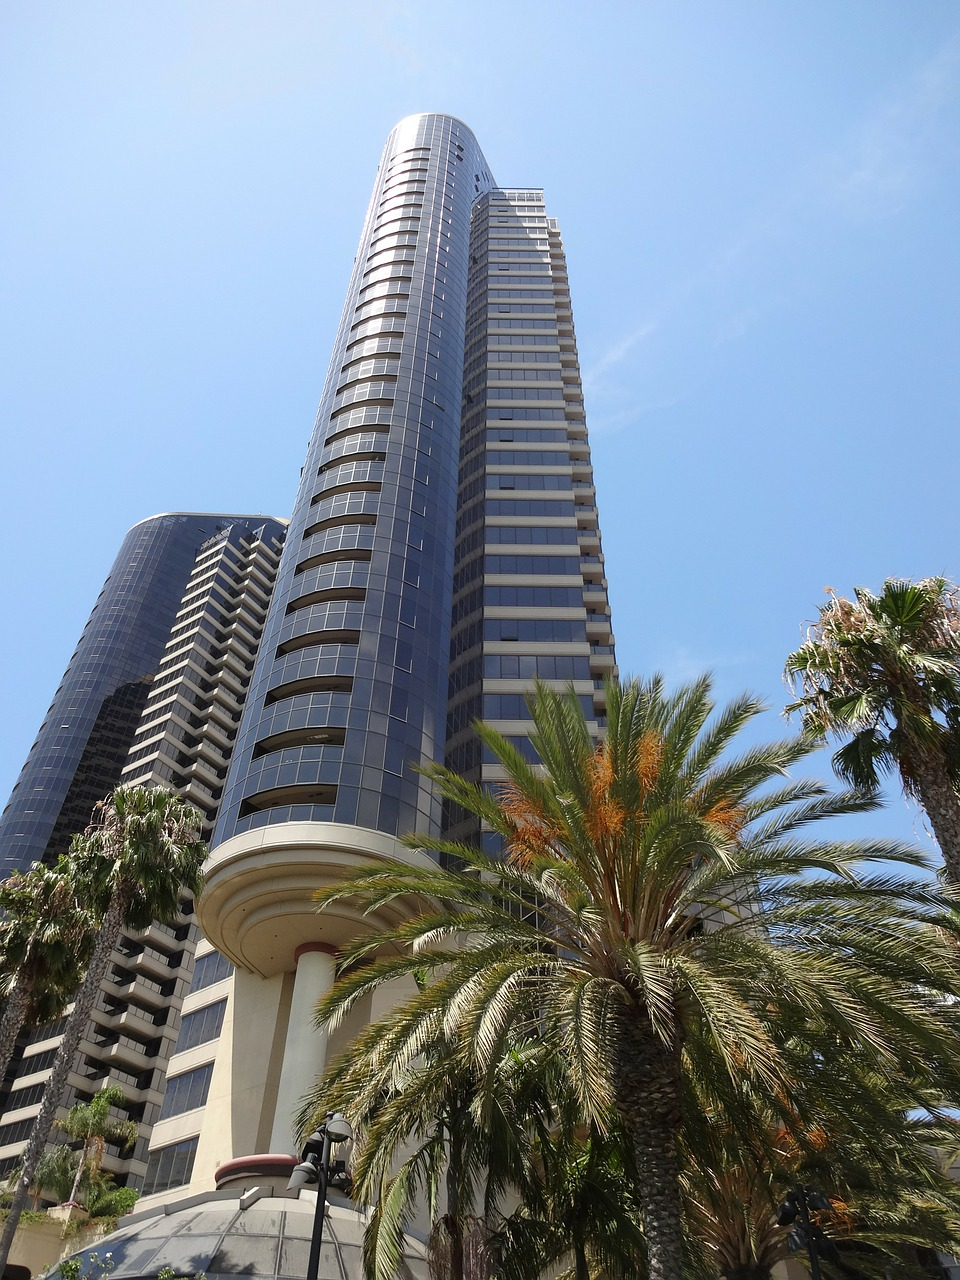 san diego california city free photo